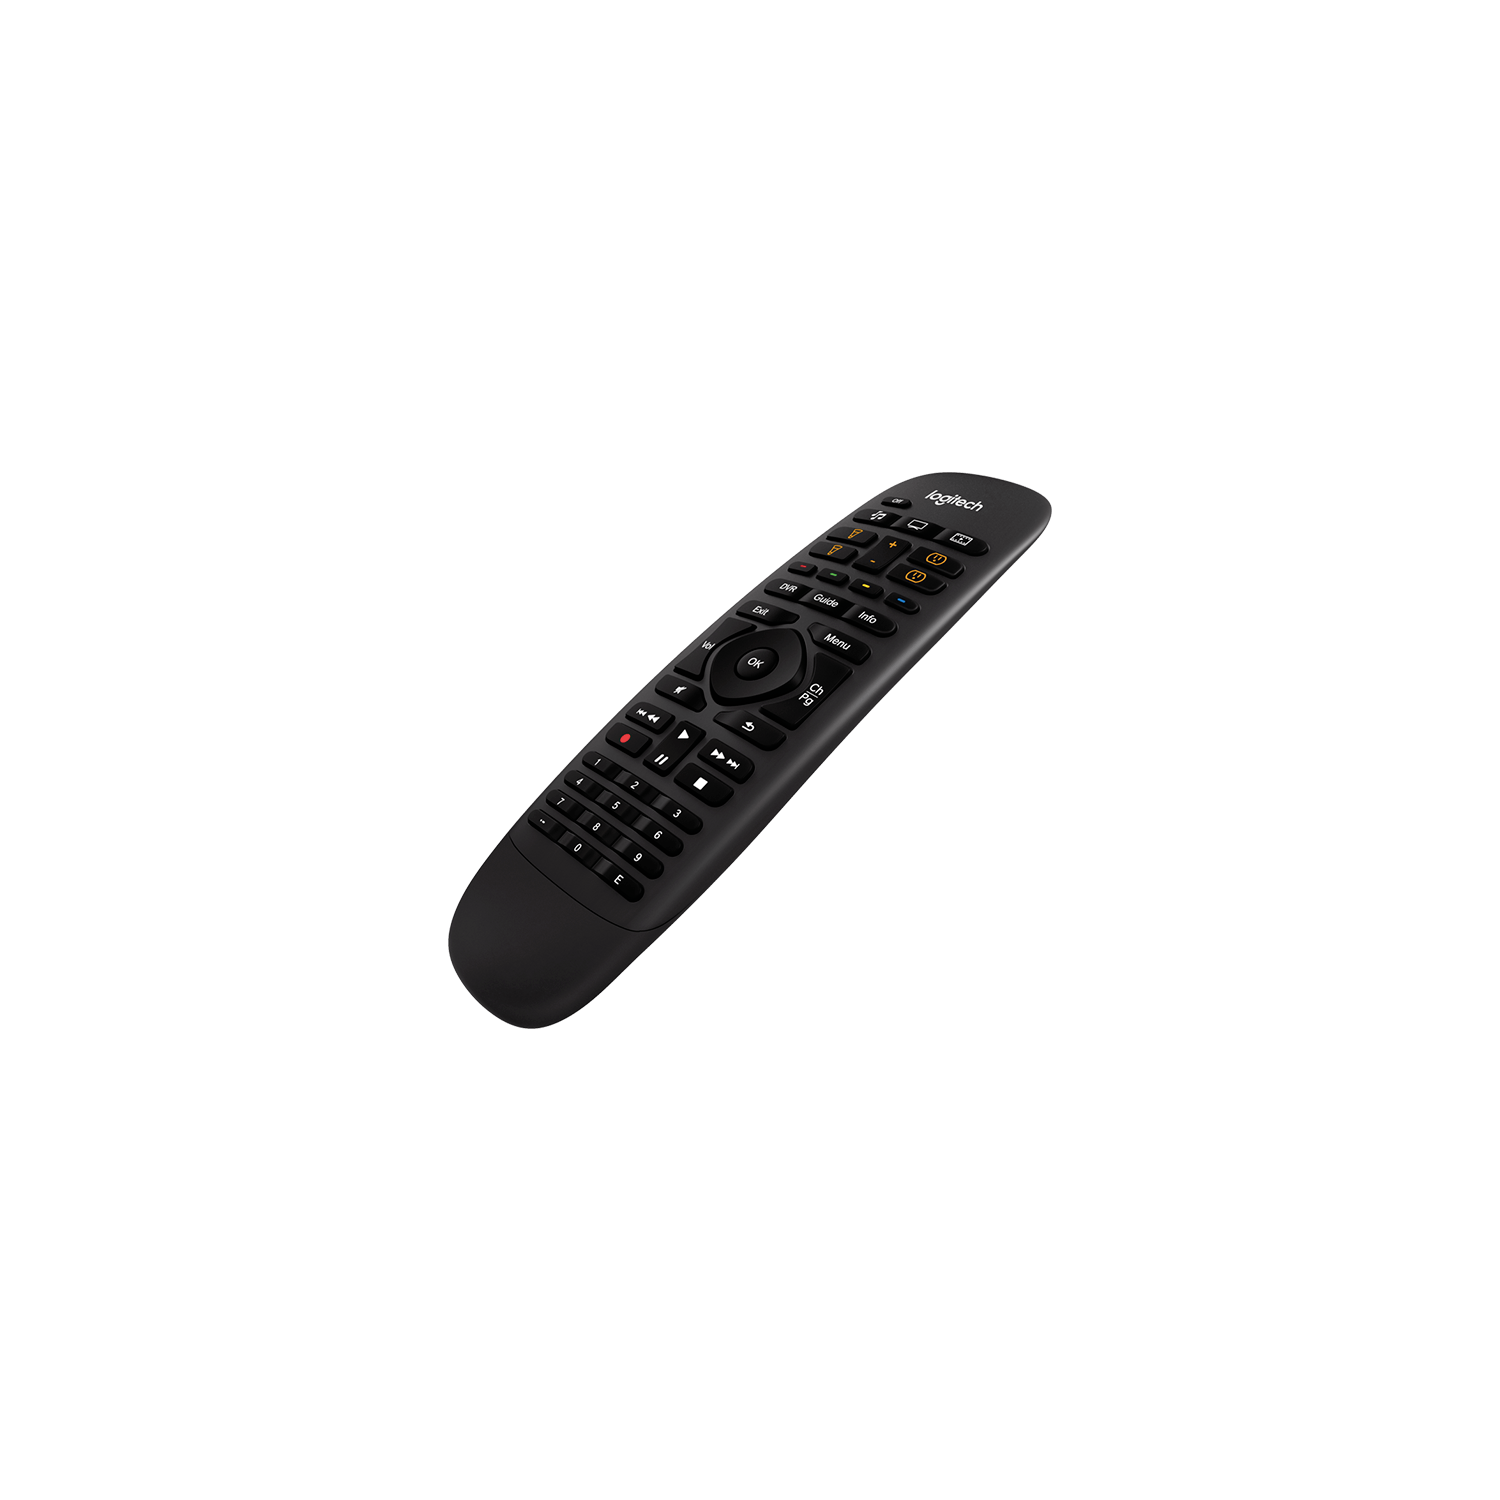 Buy Logitech Harmony Wireless Universal Remote Control